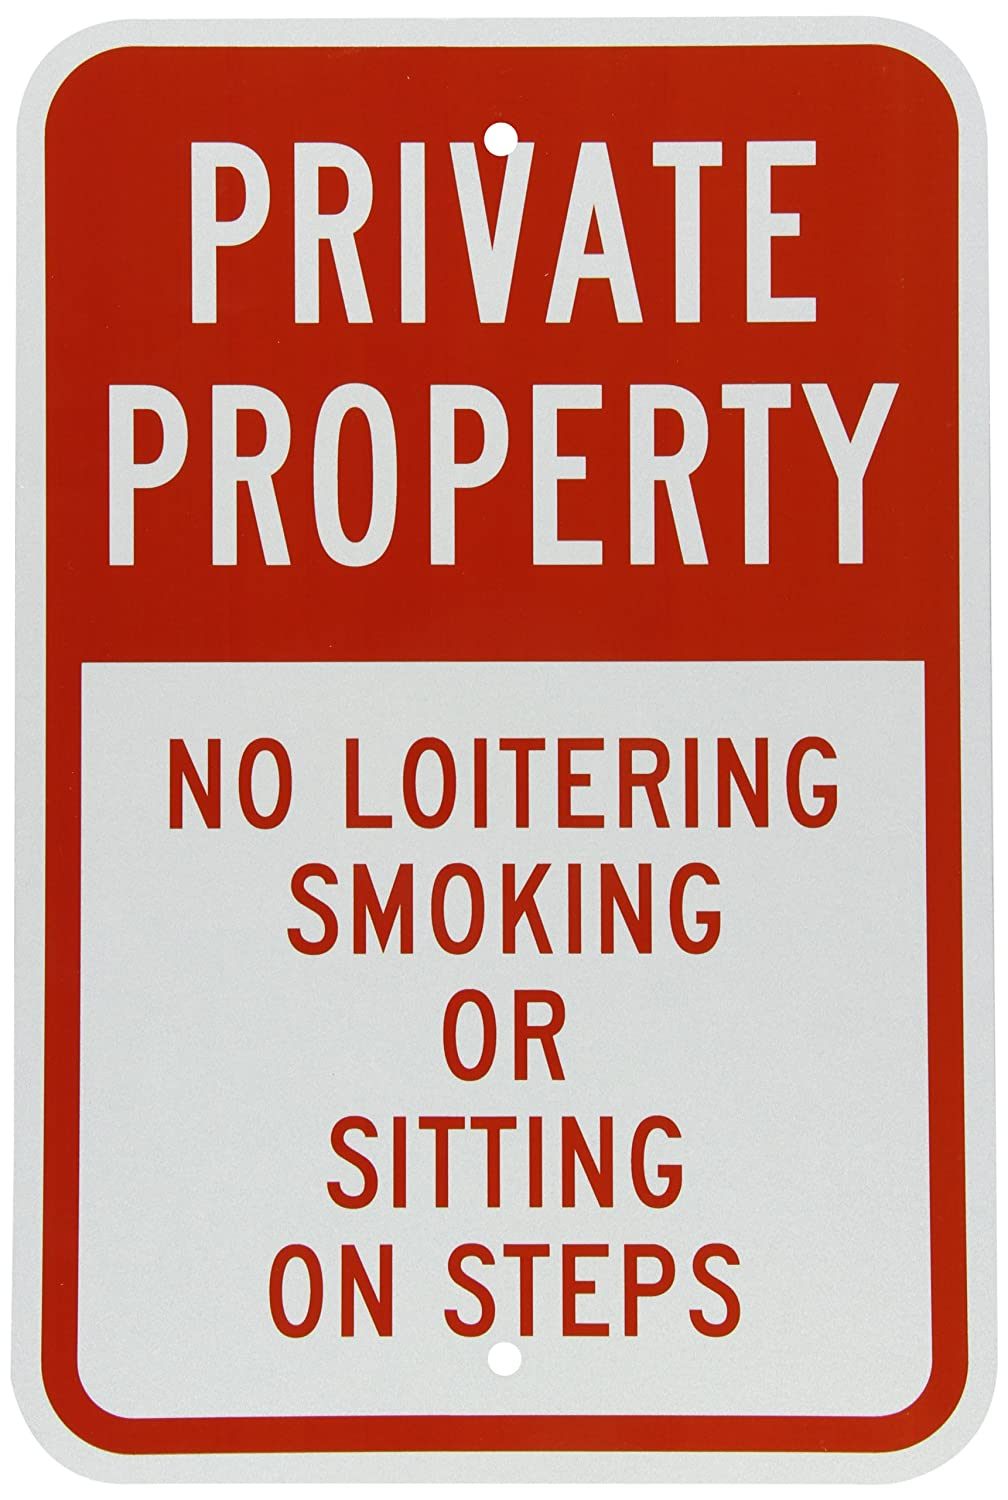 "SmartSign 3M Engineer Grade Reflective Sign, Legend ""No Loitering Smoking or Sitting on Steps"", 18"" high x 12"" wide, Red on White"